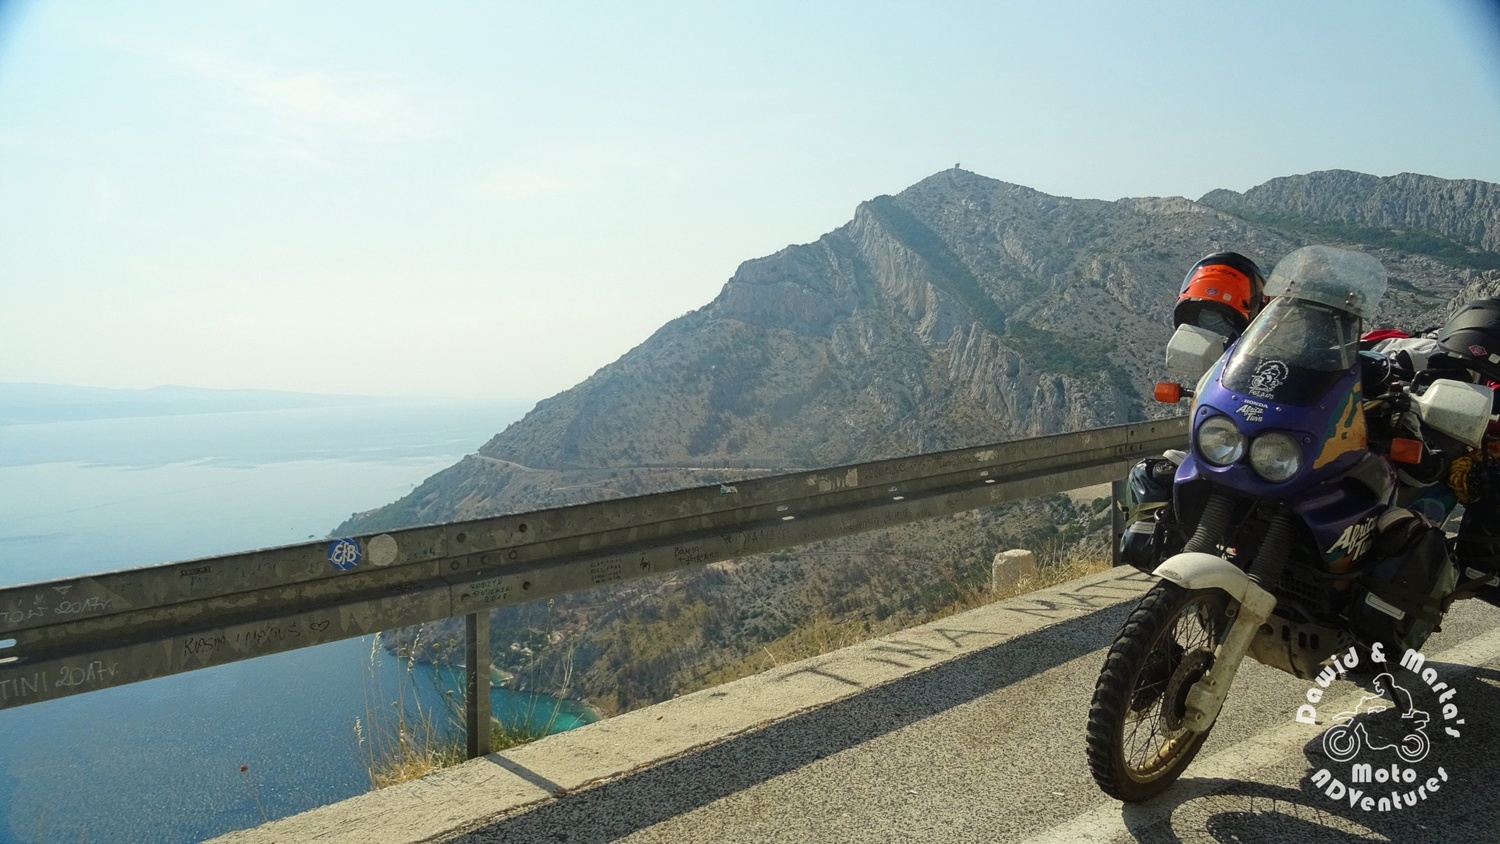 Lookout point at Cesta Domovinskog Rata in Croatia in Biokovo Nature Park with Africa Twin in the foreground